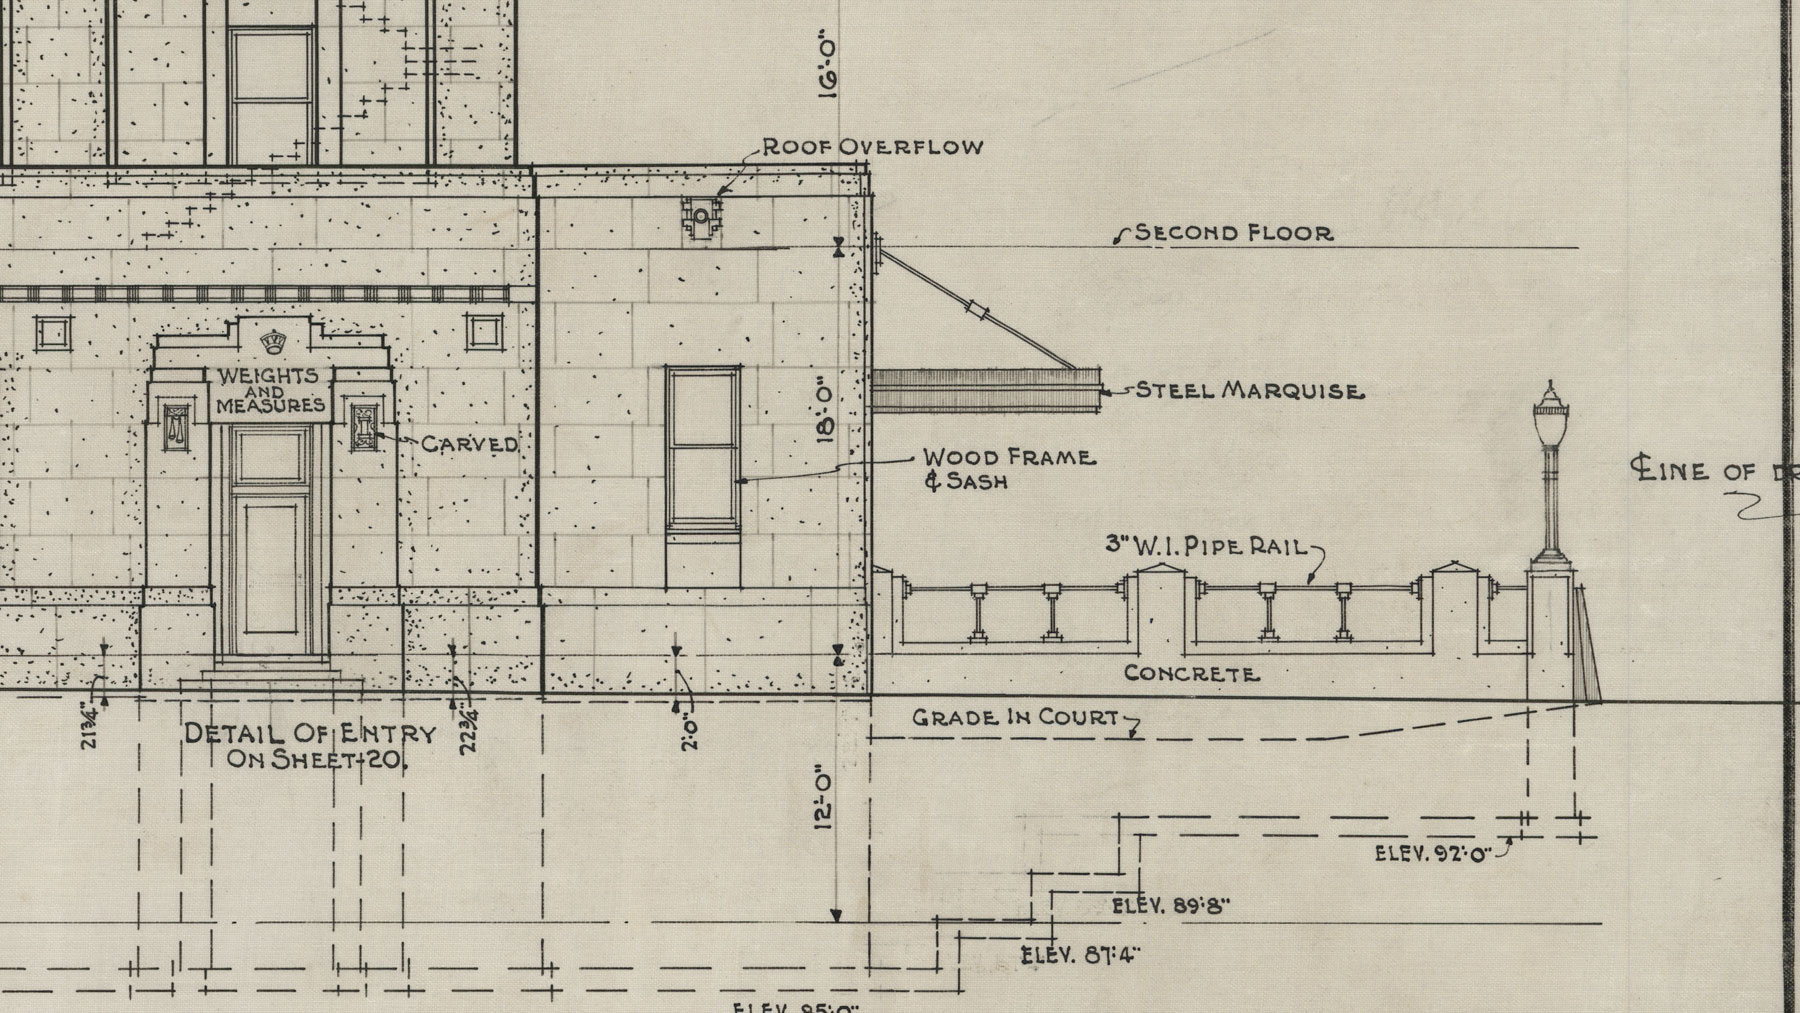 The Dominion Public Building: The Architectural Drawings - Fullarton Street Elevation